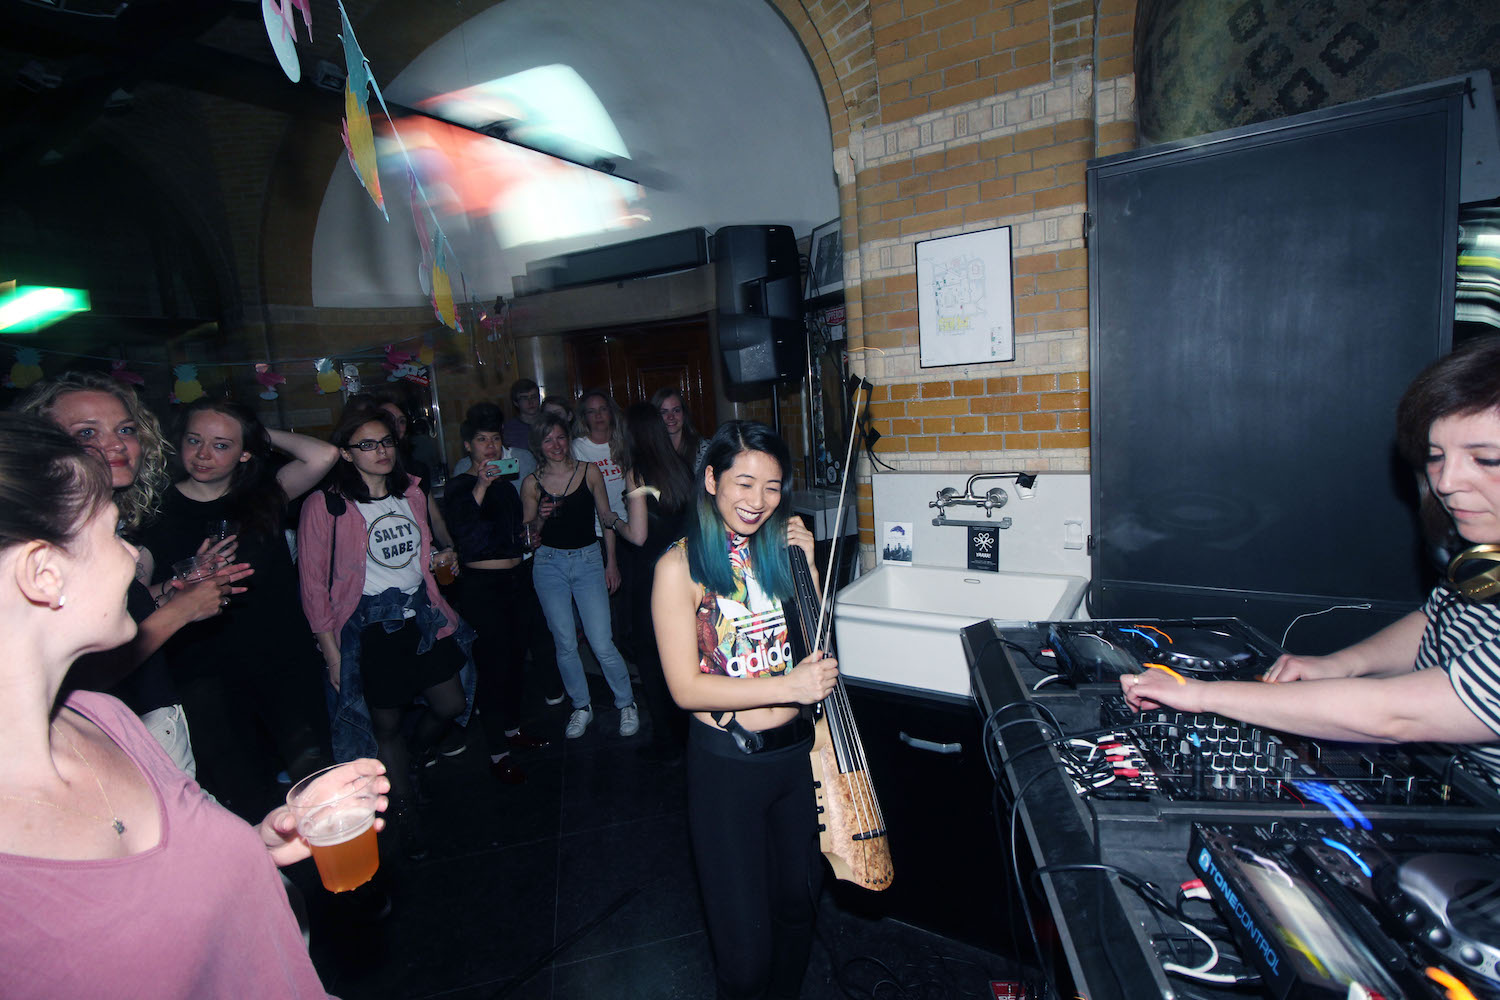 Girl-Drop-Yarrr-Cut-Throat-Amsterdam-DJ-Nata-Babaju-The-Wong-Janice-electric-cellist-music-producer-based-in-Amsterdam-3.jpg